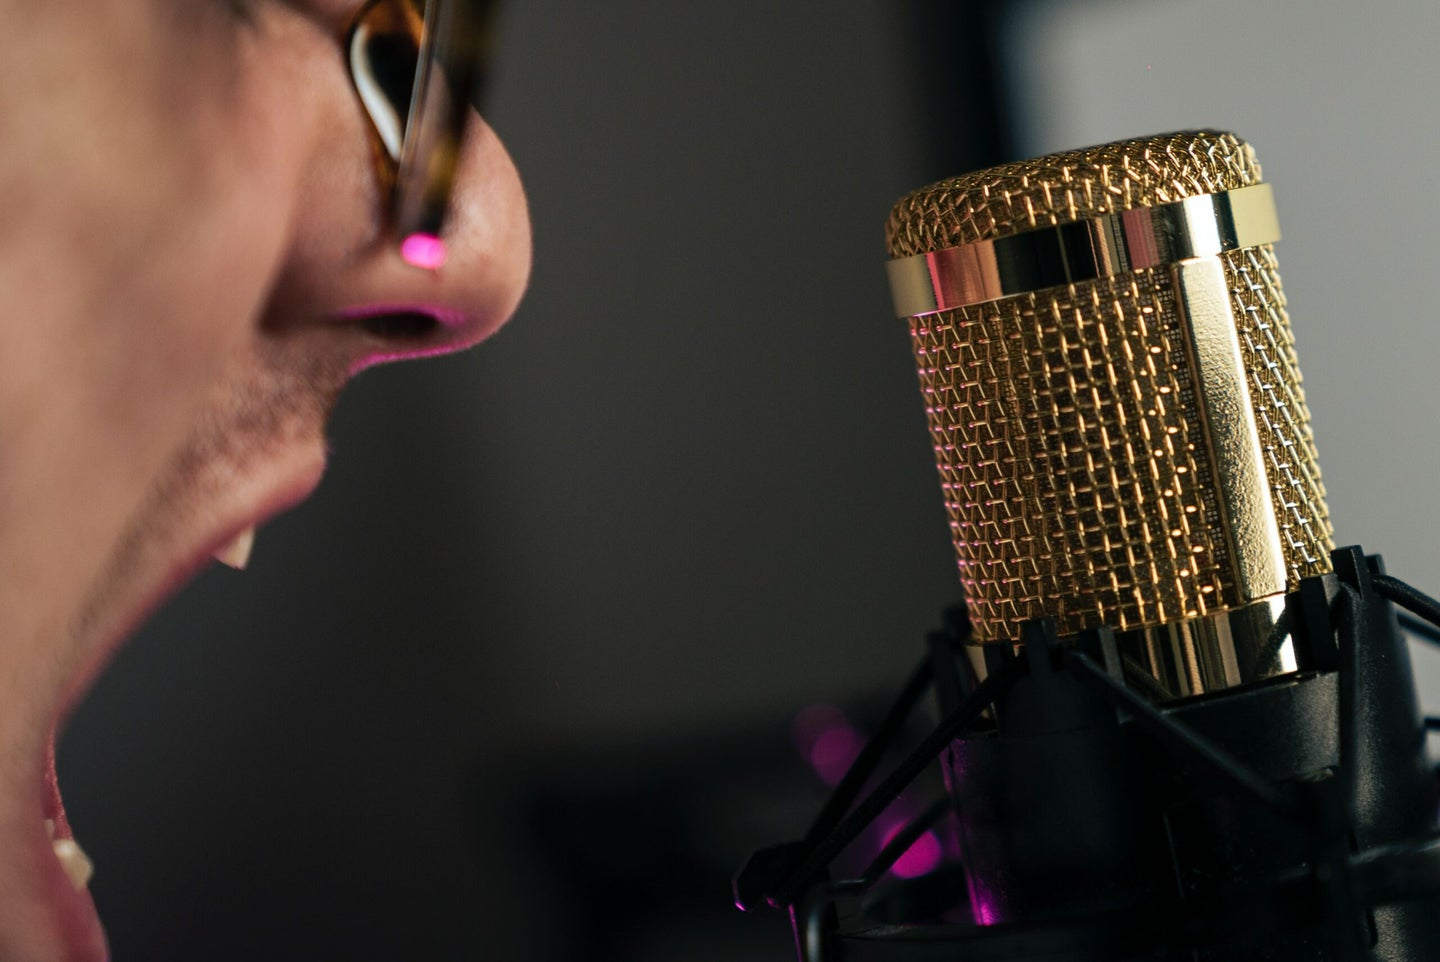 man yells at condenser mic with a gold grill